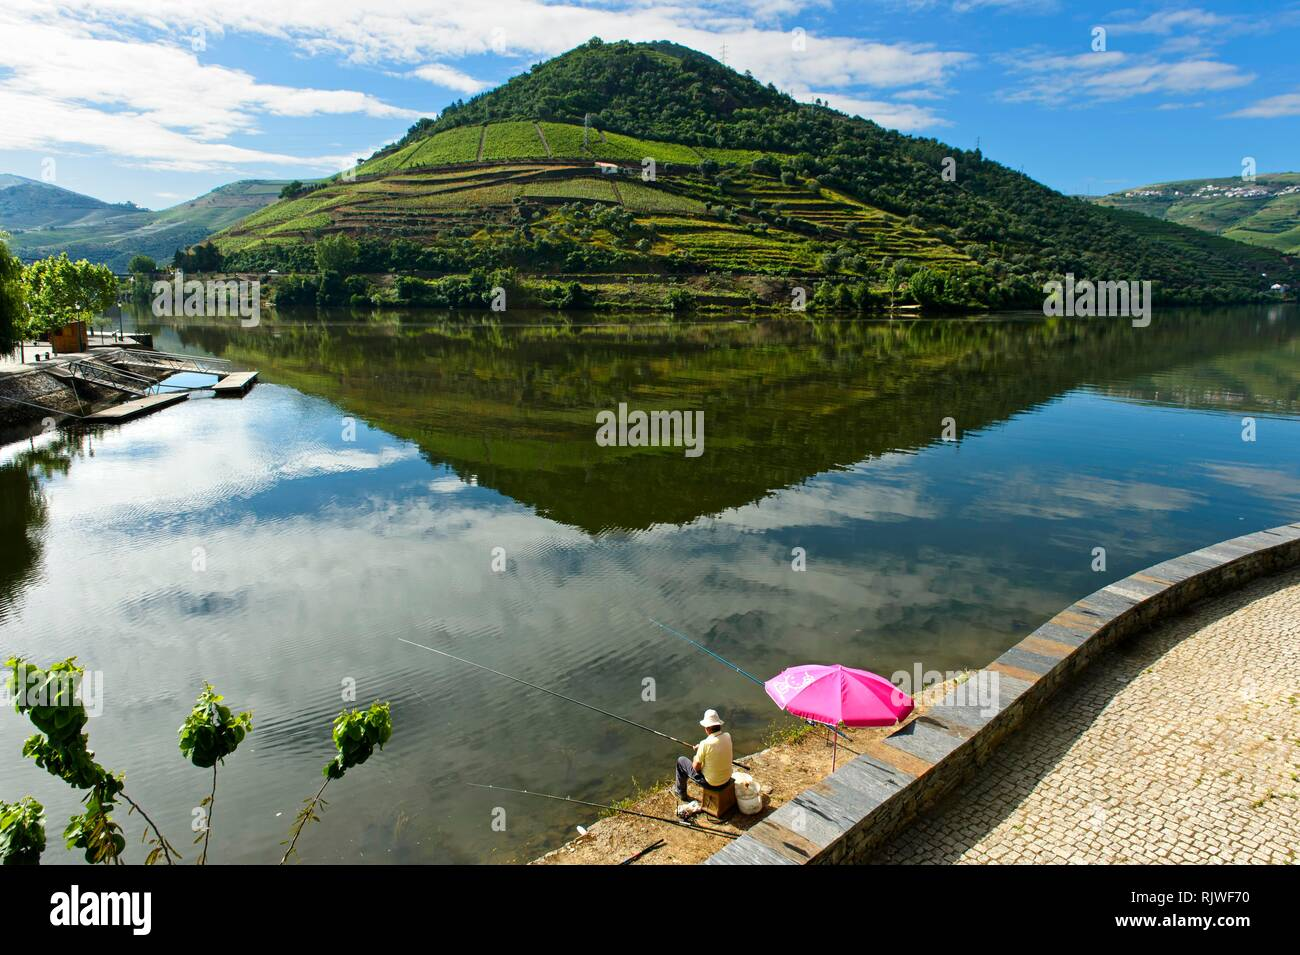 Angler at Douro River, Viewpoint Quinta das Carvalhas behind, Pinhao, Douro Valley, Portugal - Stock Image